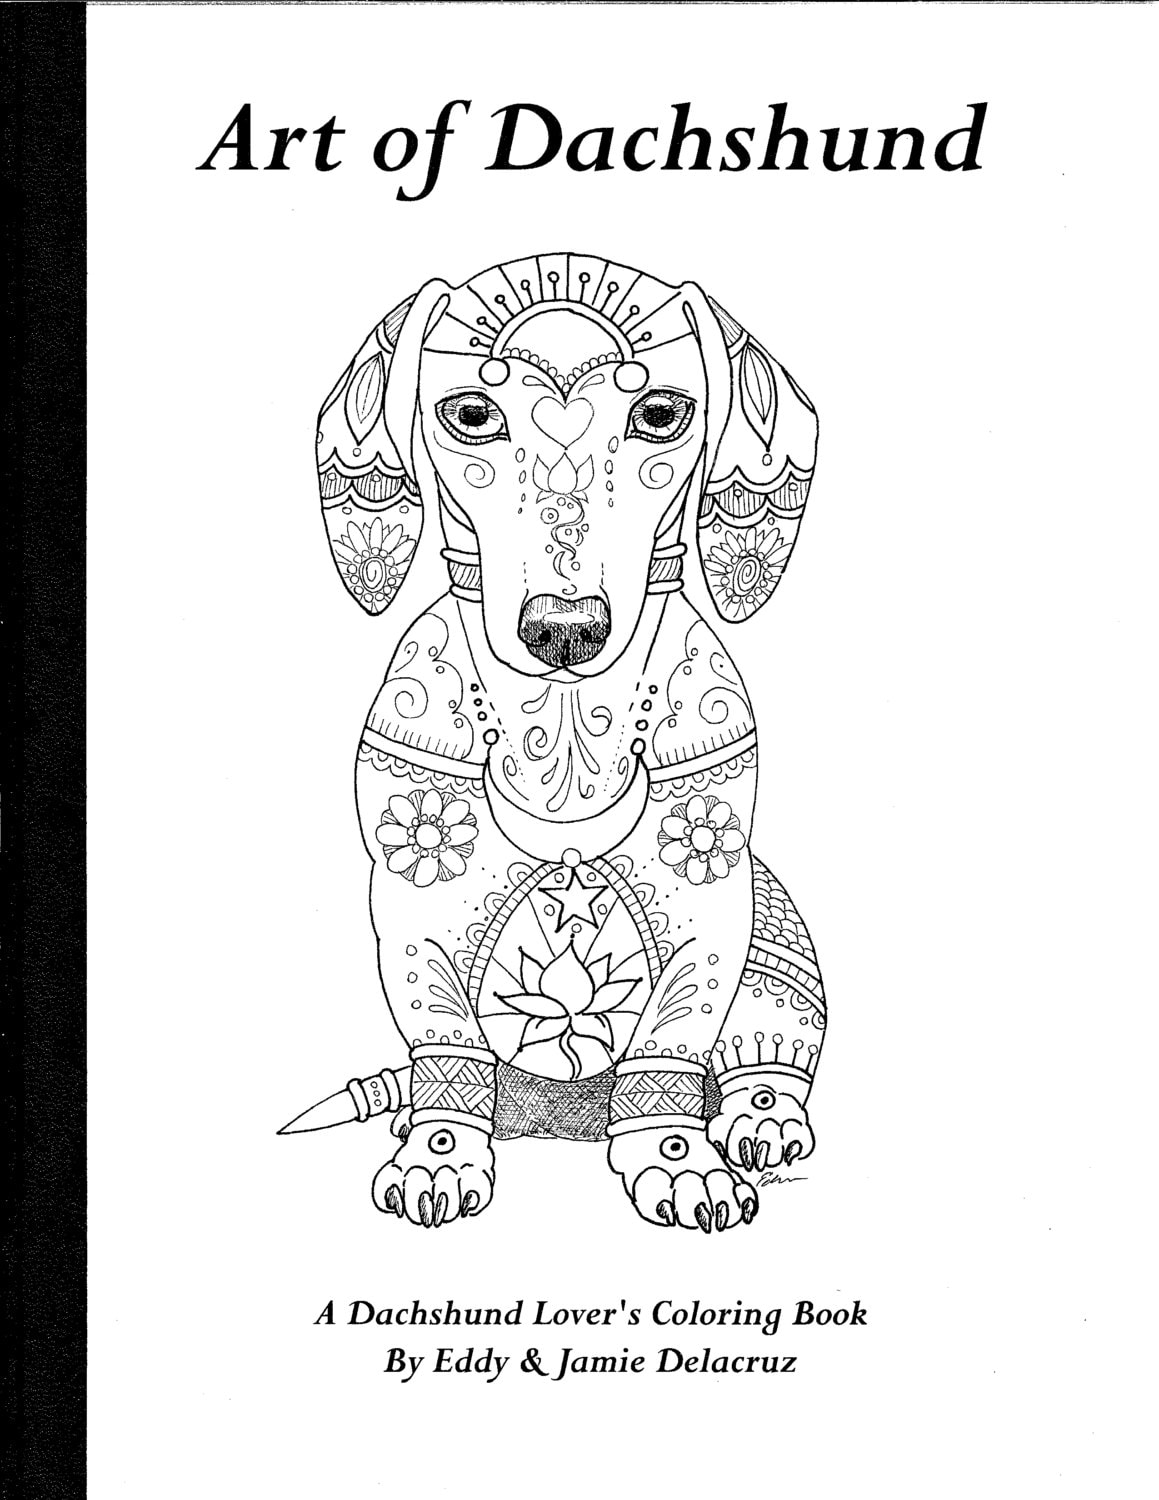 Art of Dachshund Coloring Book Volume No. 1 Physical Book | Etsy